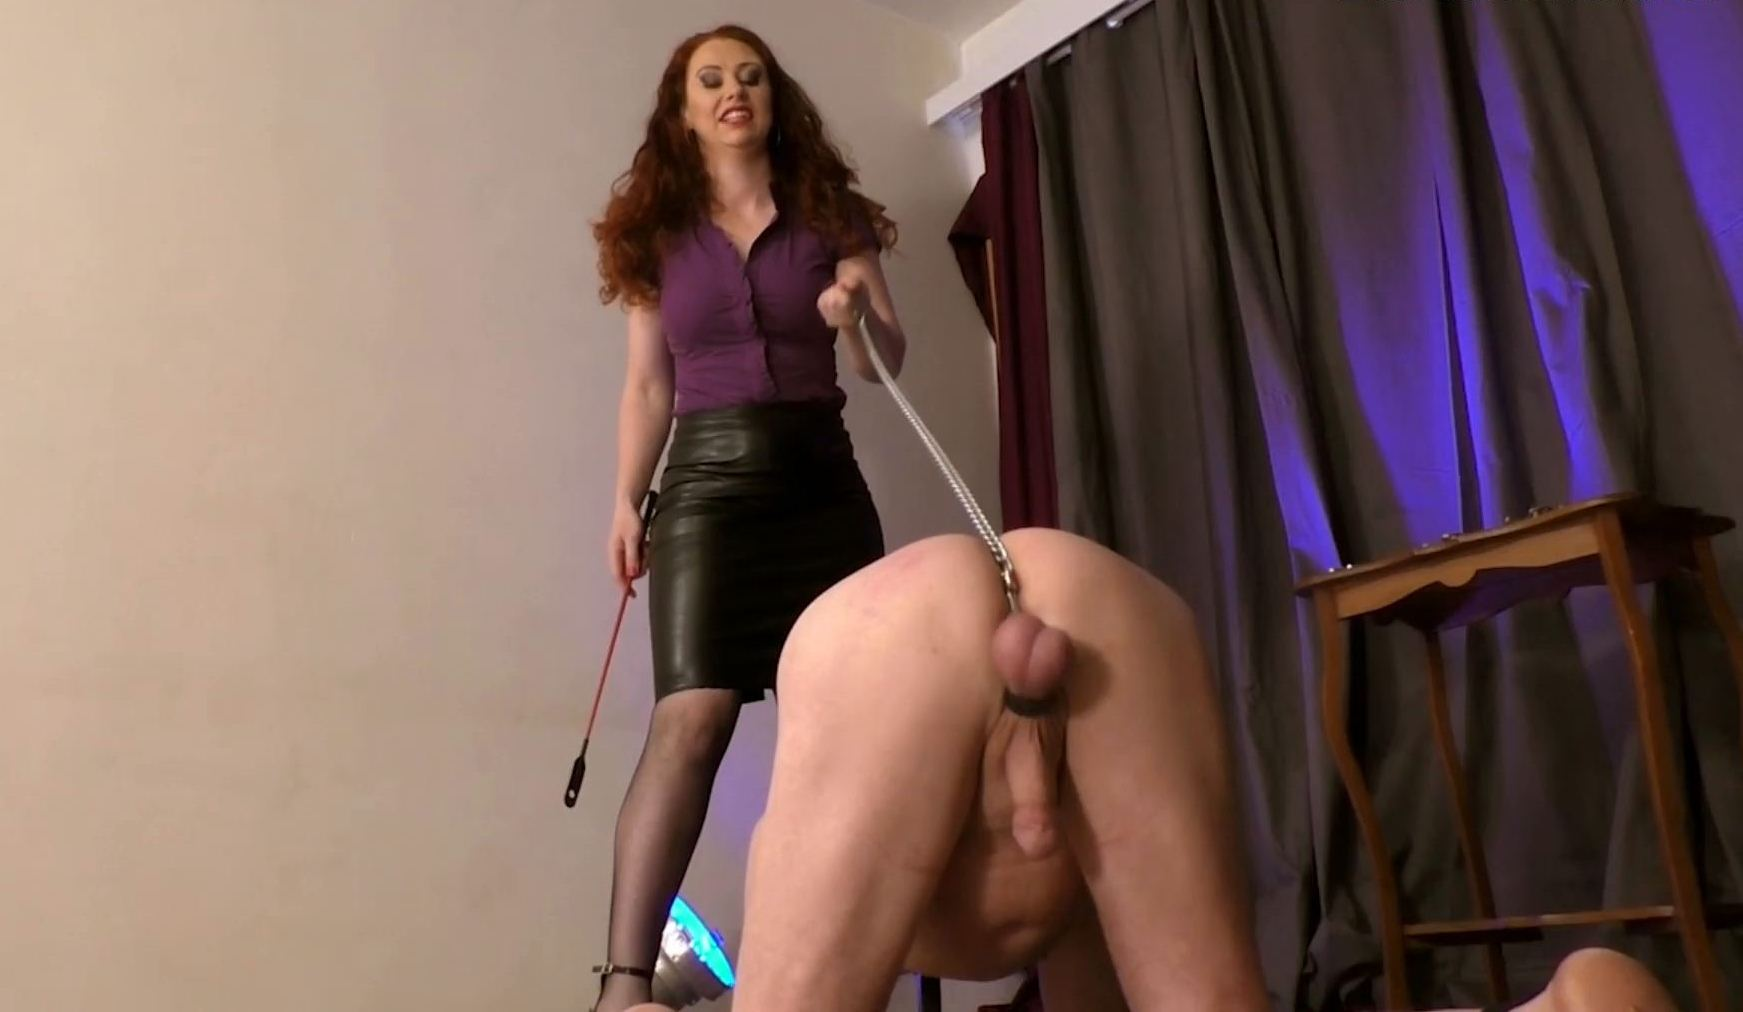 Mistress Lady Renee In Scene: Sack Stimulation - MISTRESSLADYRENEE - FULL HD/1080p/MP4